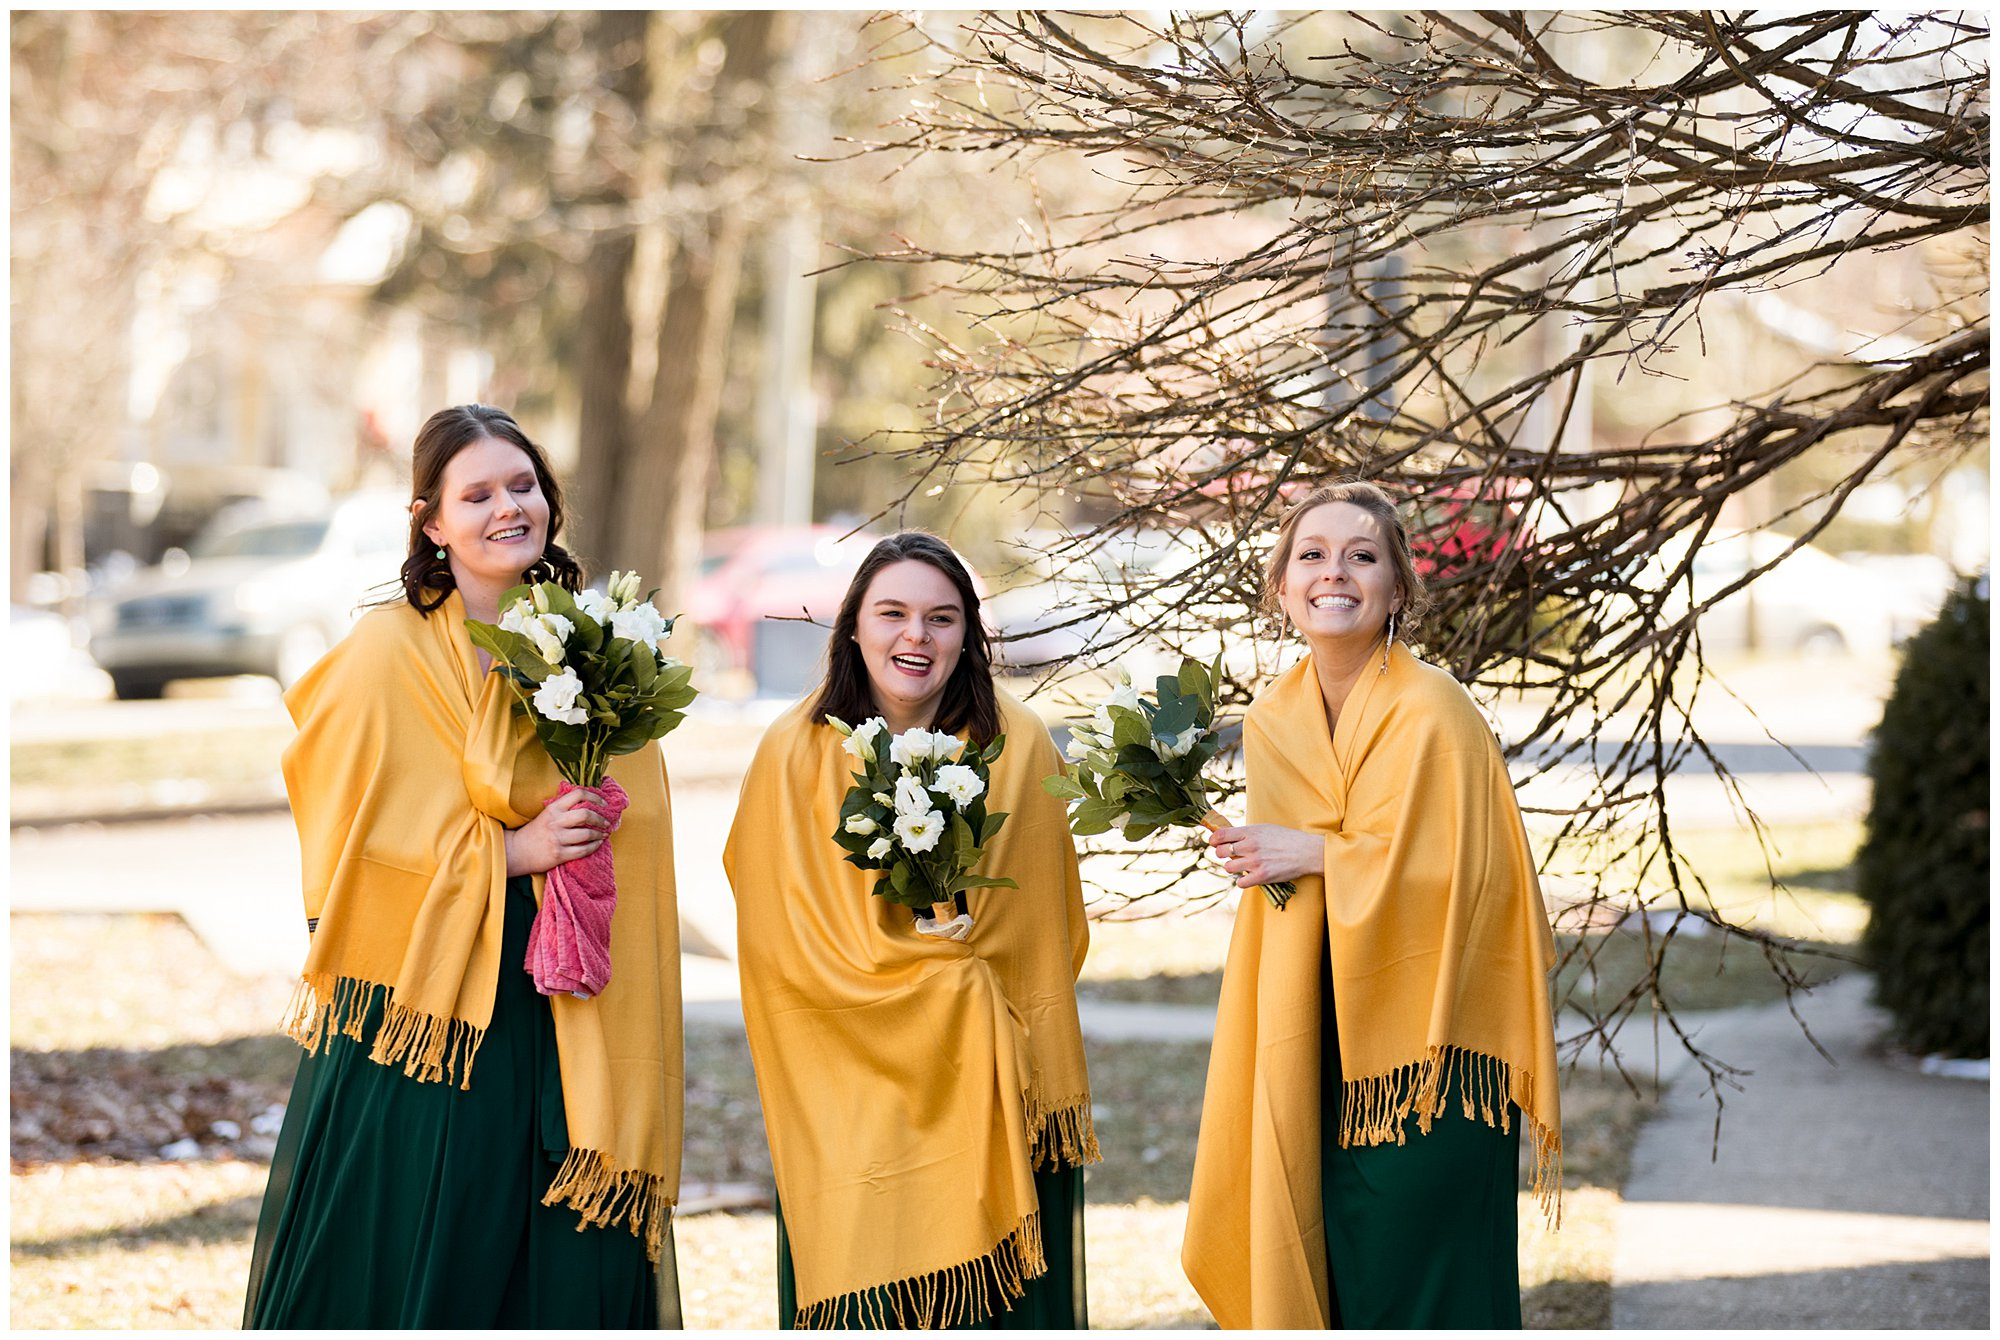 bridesmaids watch bride and groom have first look in front of church